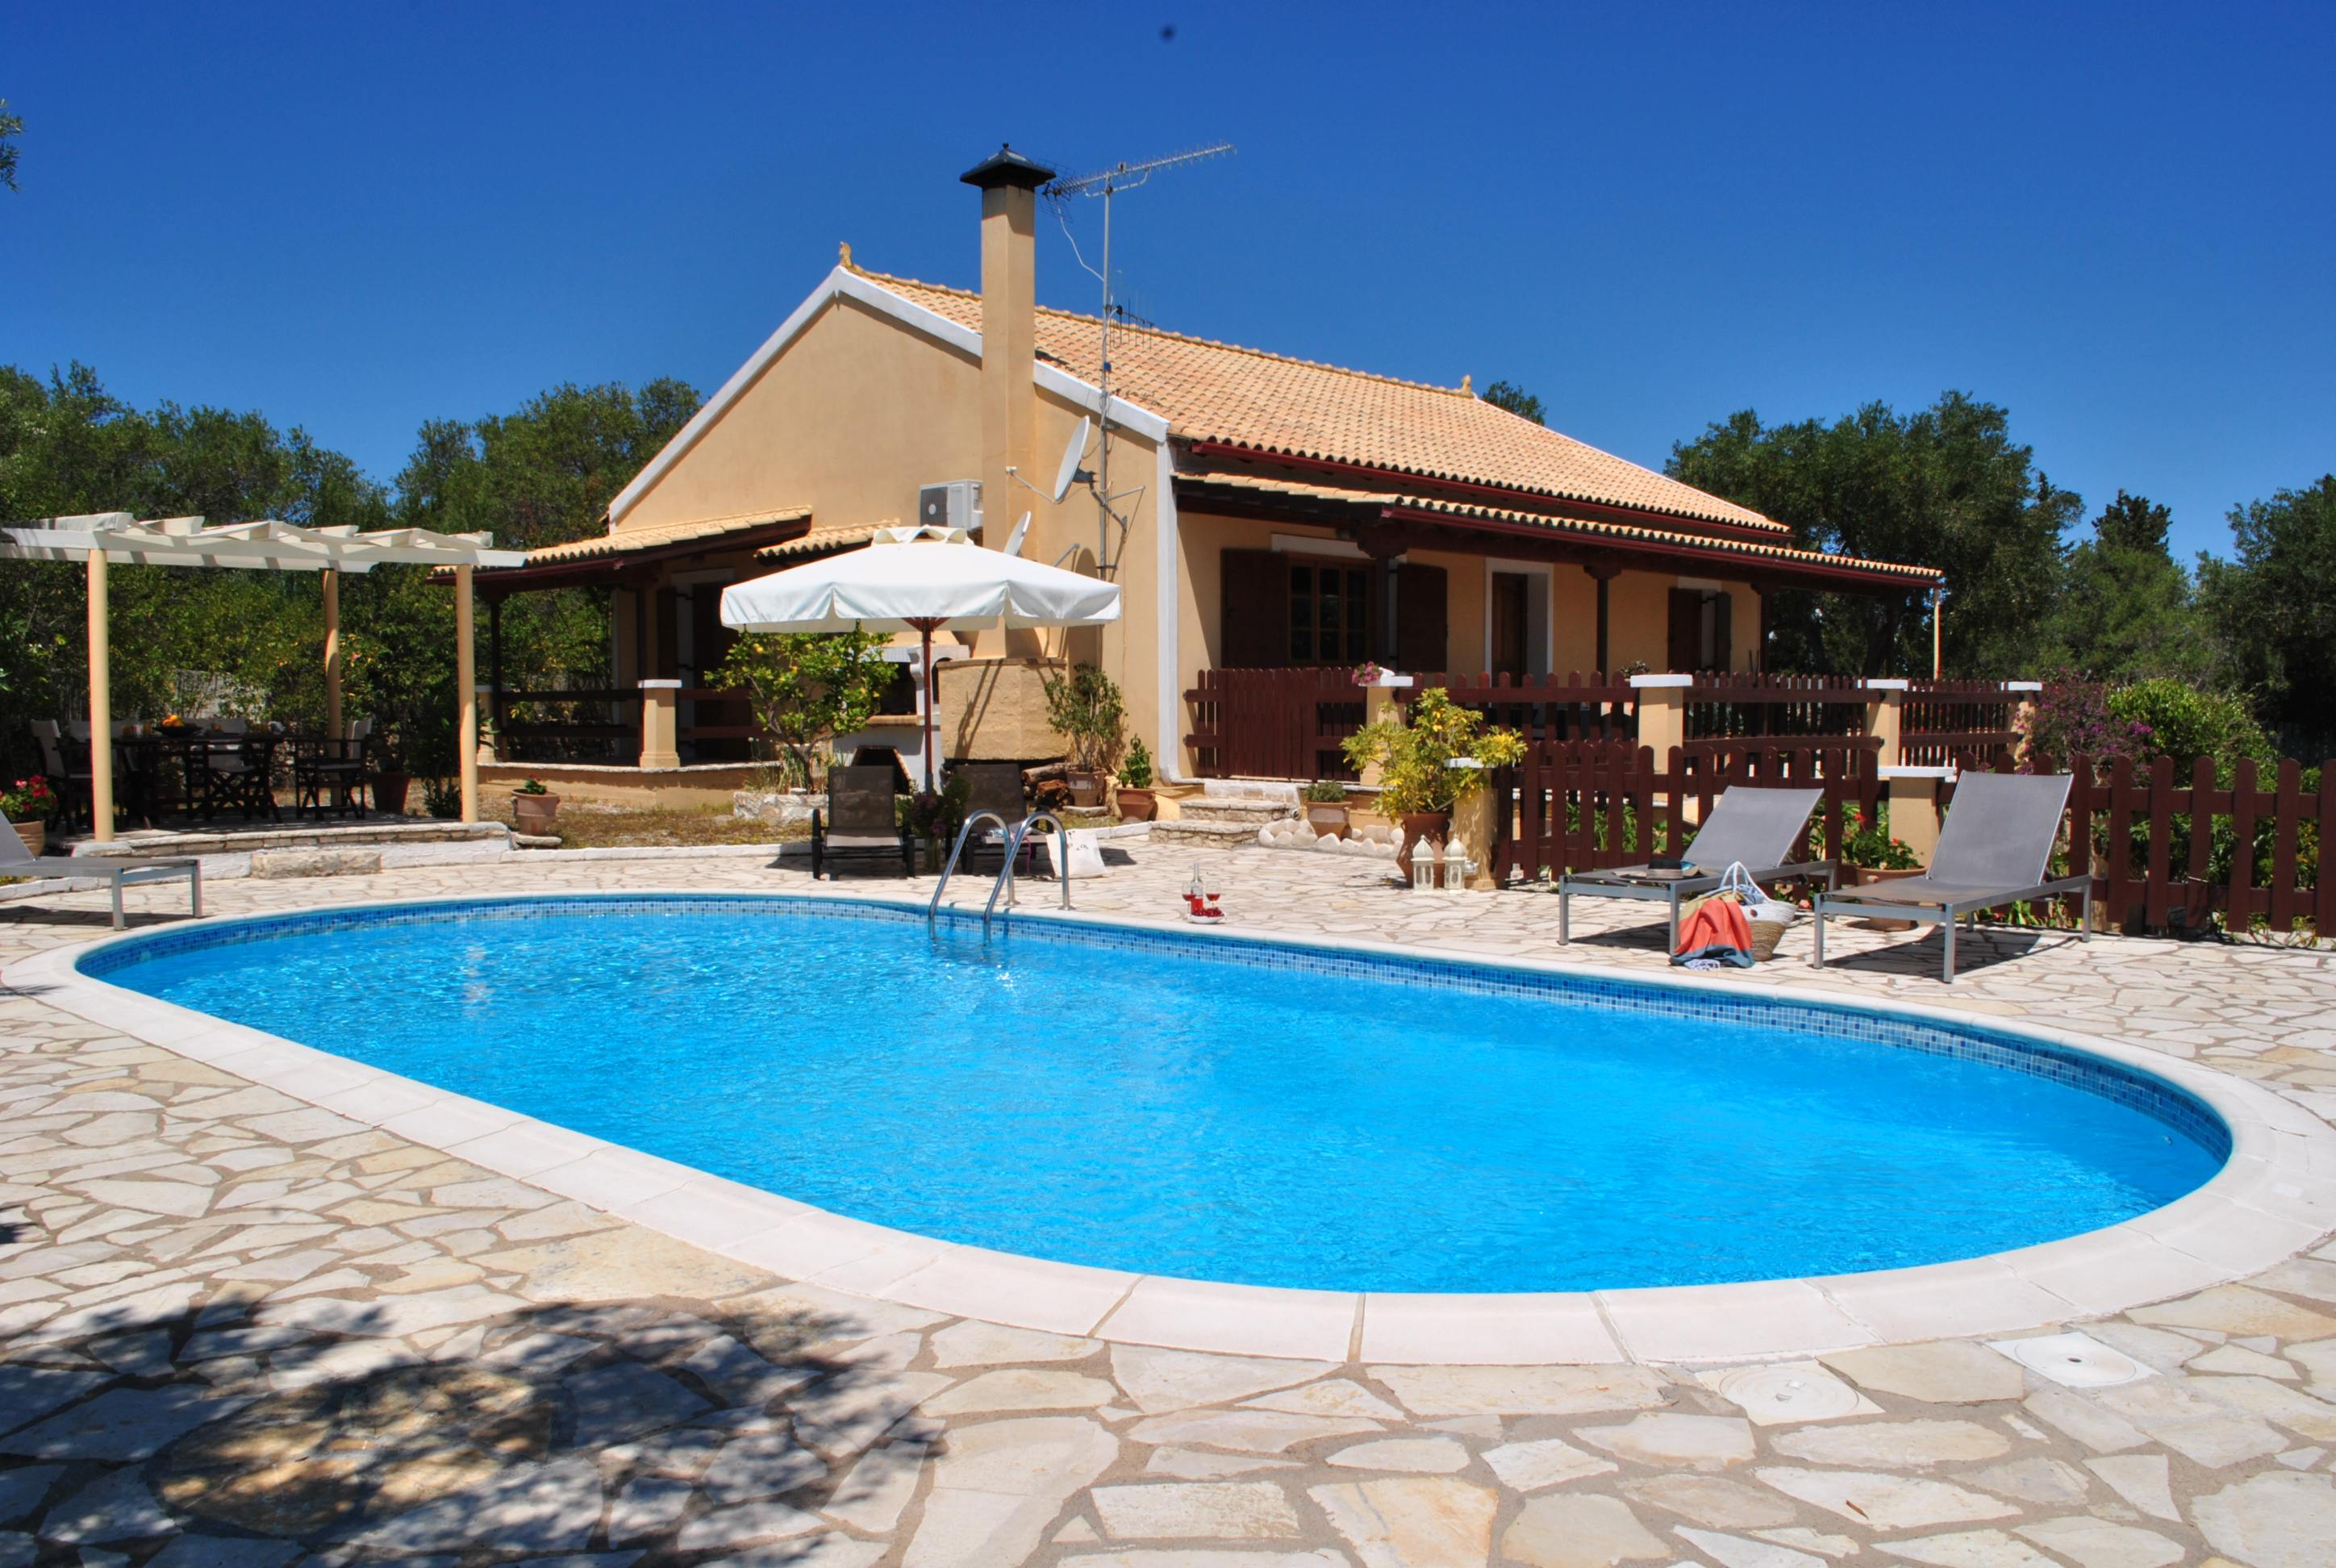 rent a house in paxos - paxos pool villas - ionian summer